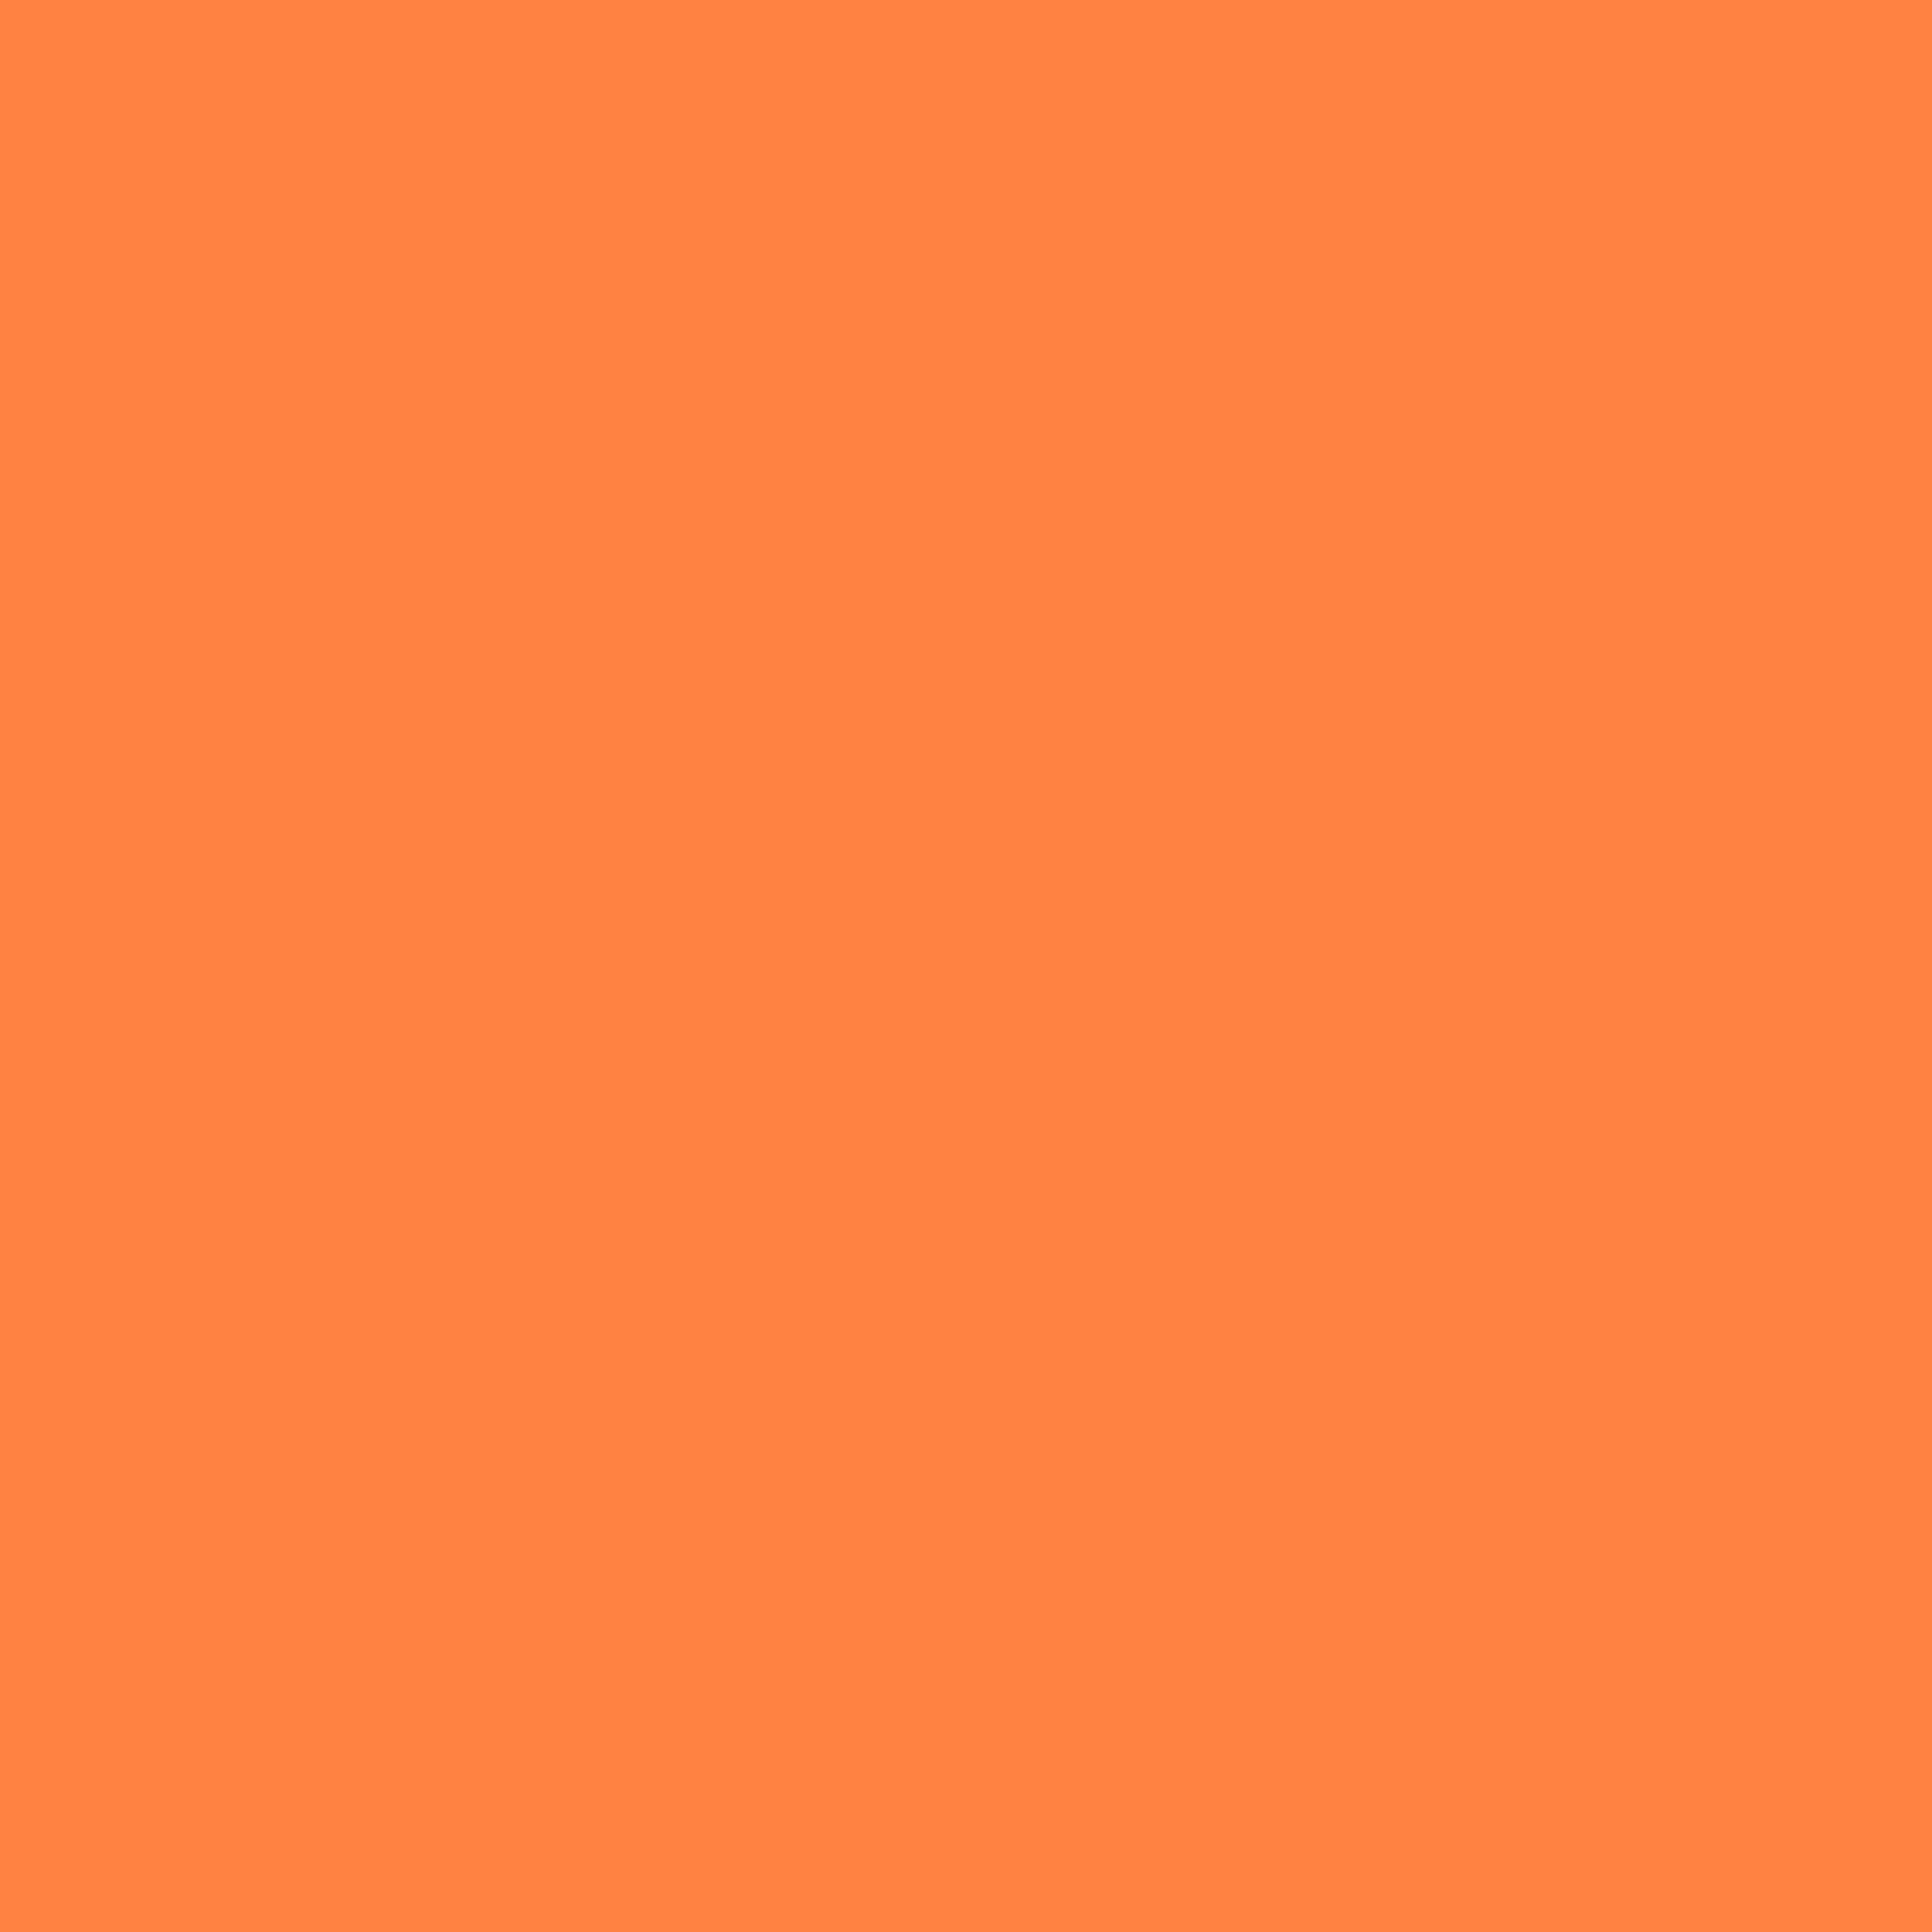 3600x3600 Mango Tango Solid Color Background